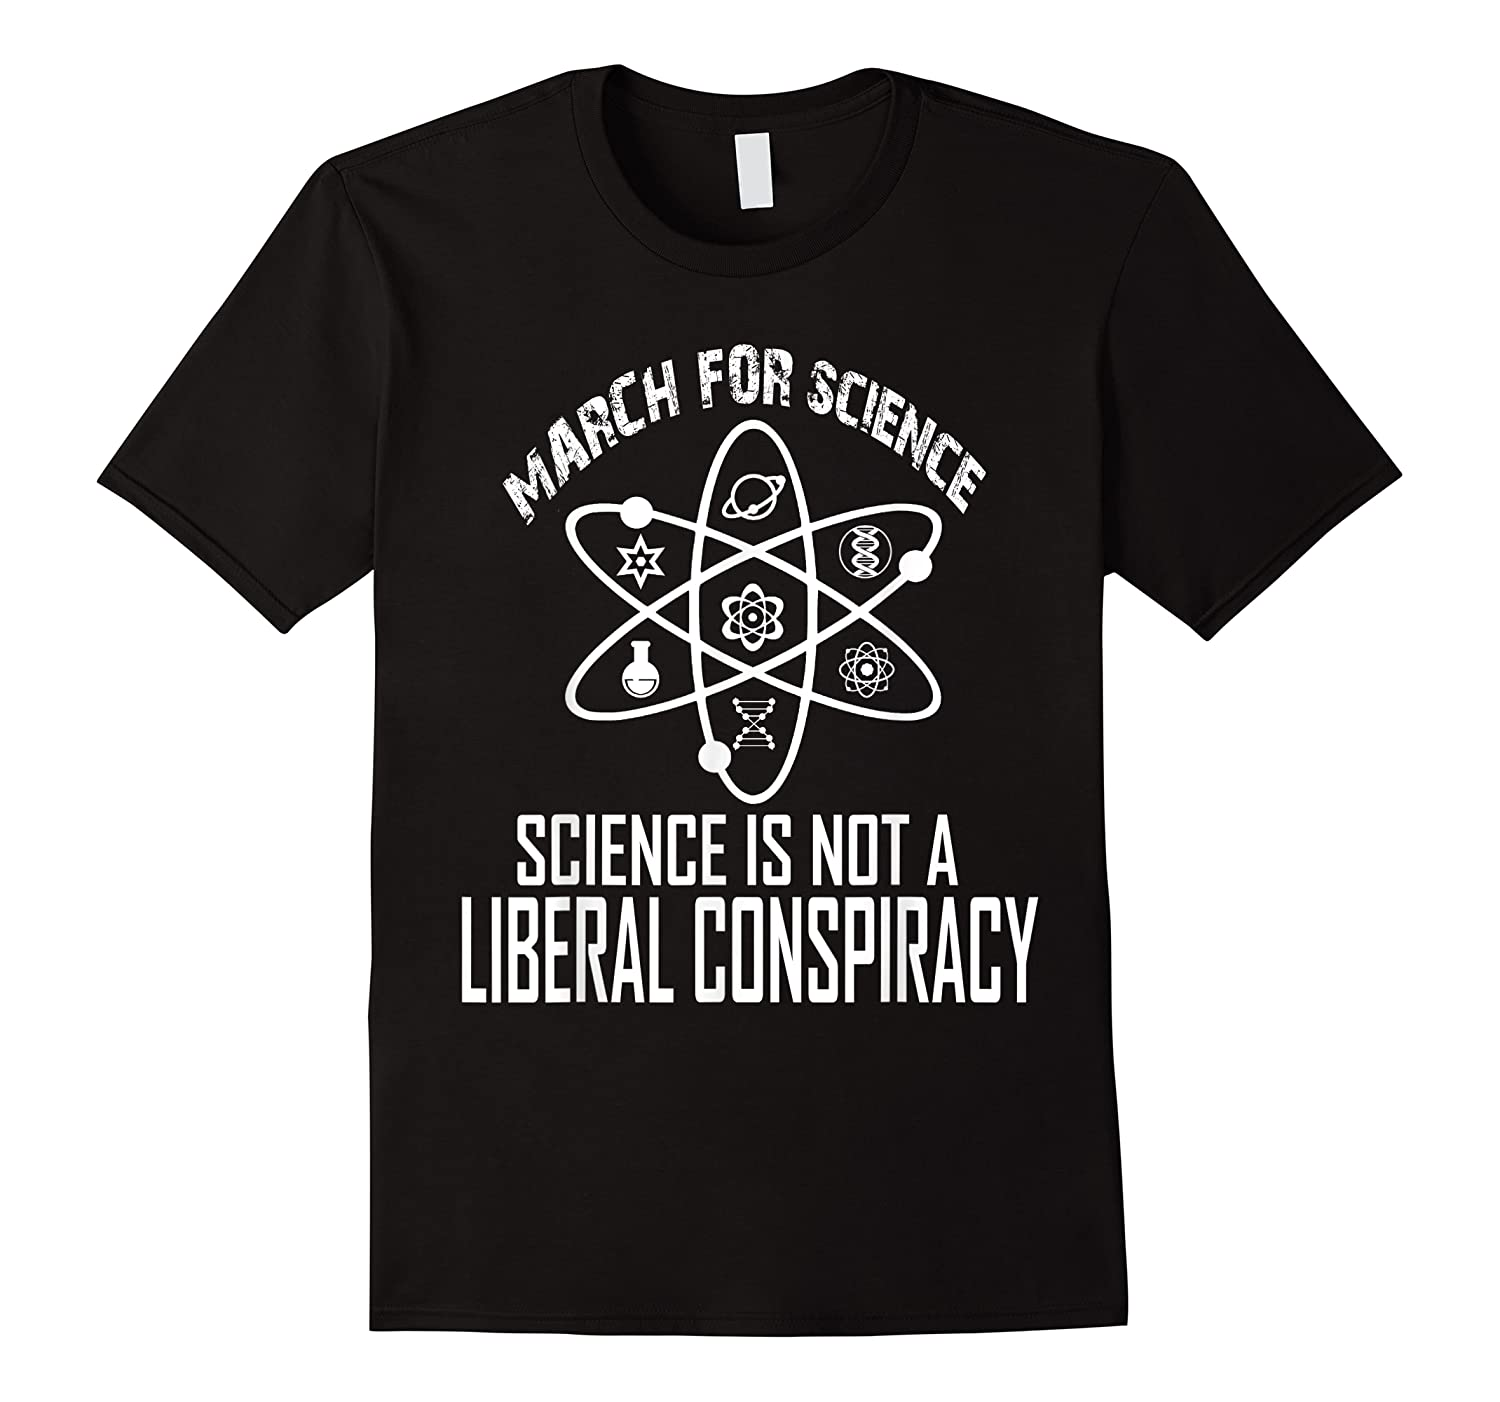 March For Science Science Isn't Liberal Conspiracy Shirts